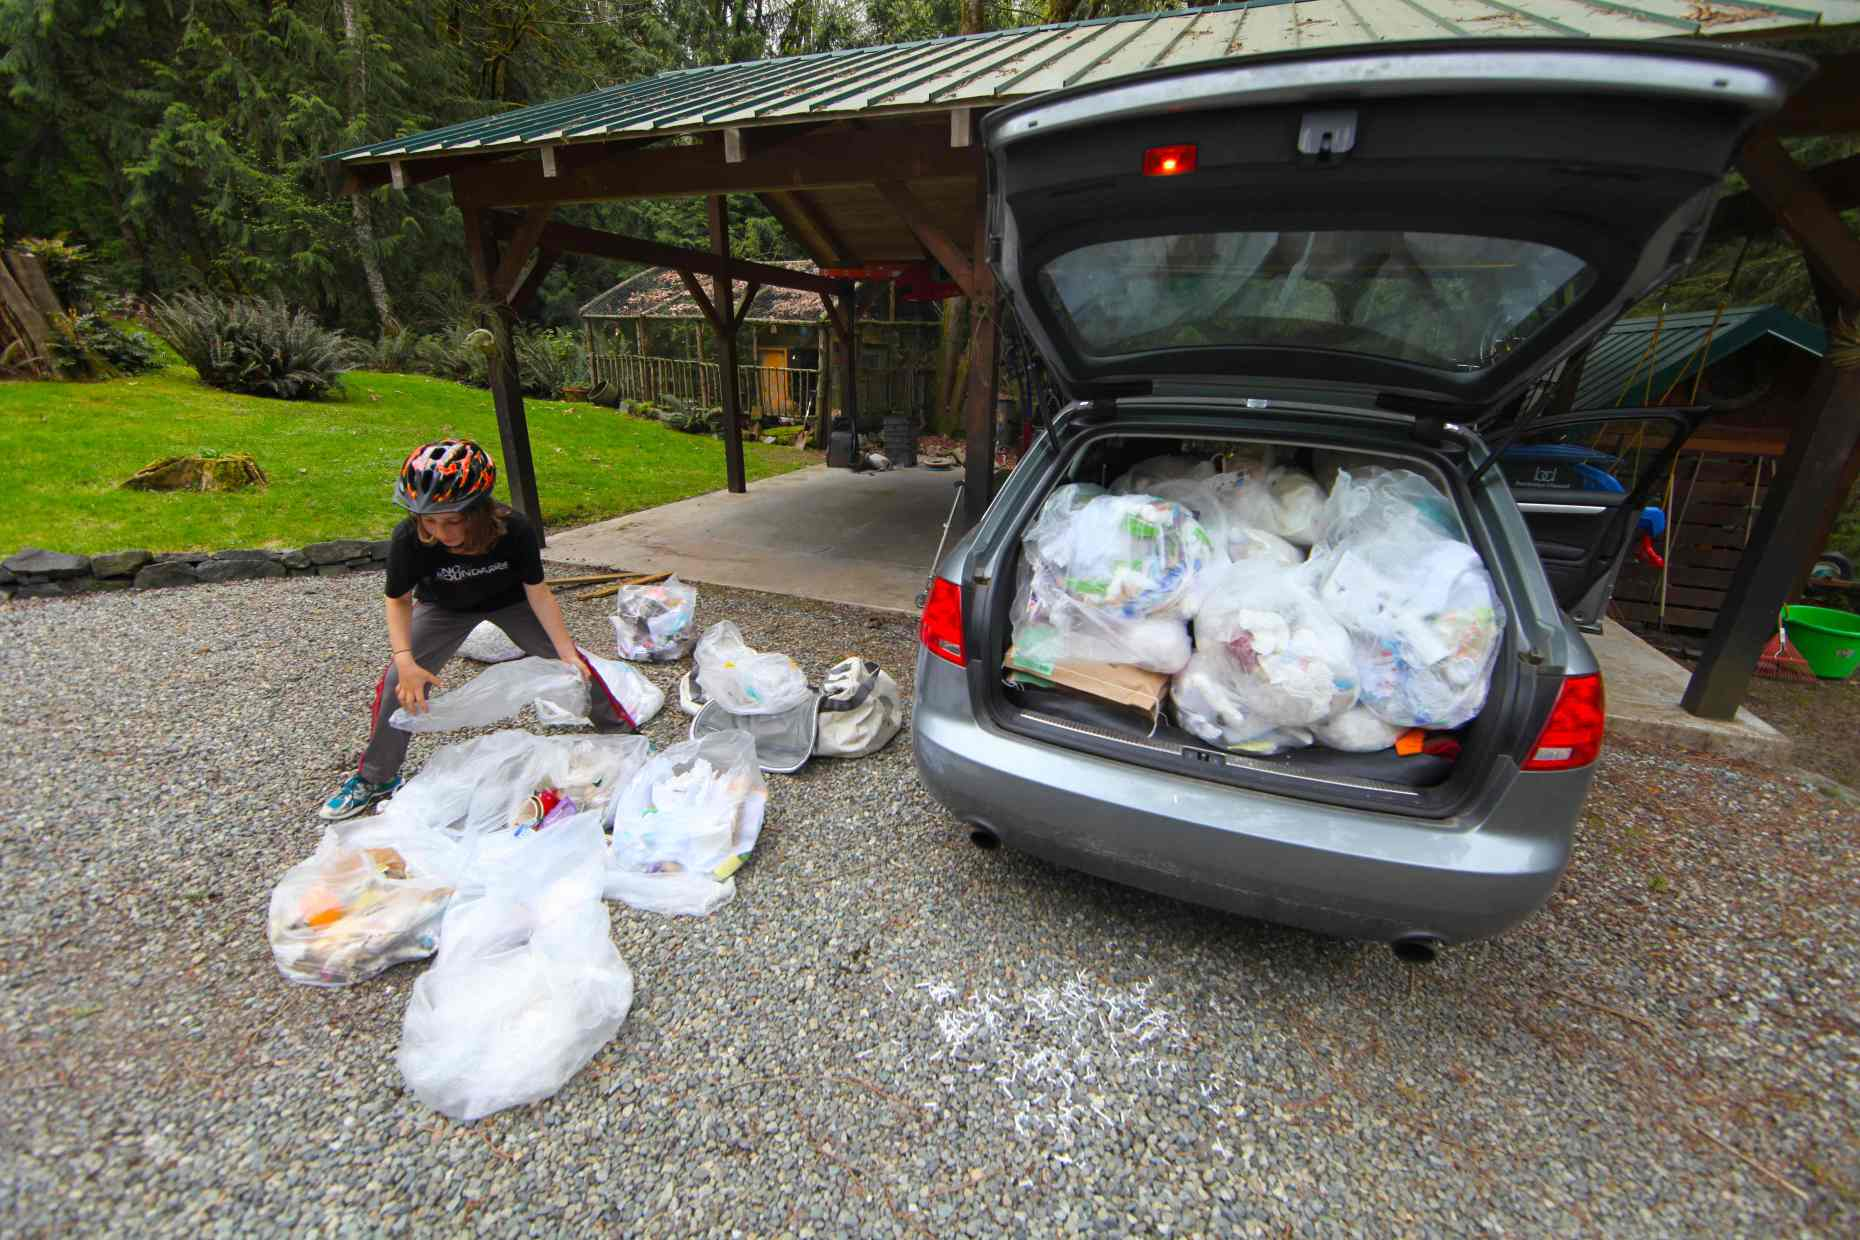 A Carload of Trash = 2 Weeks' Worth of One School's Waste.